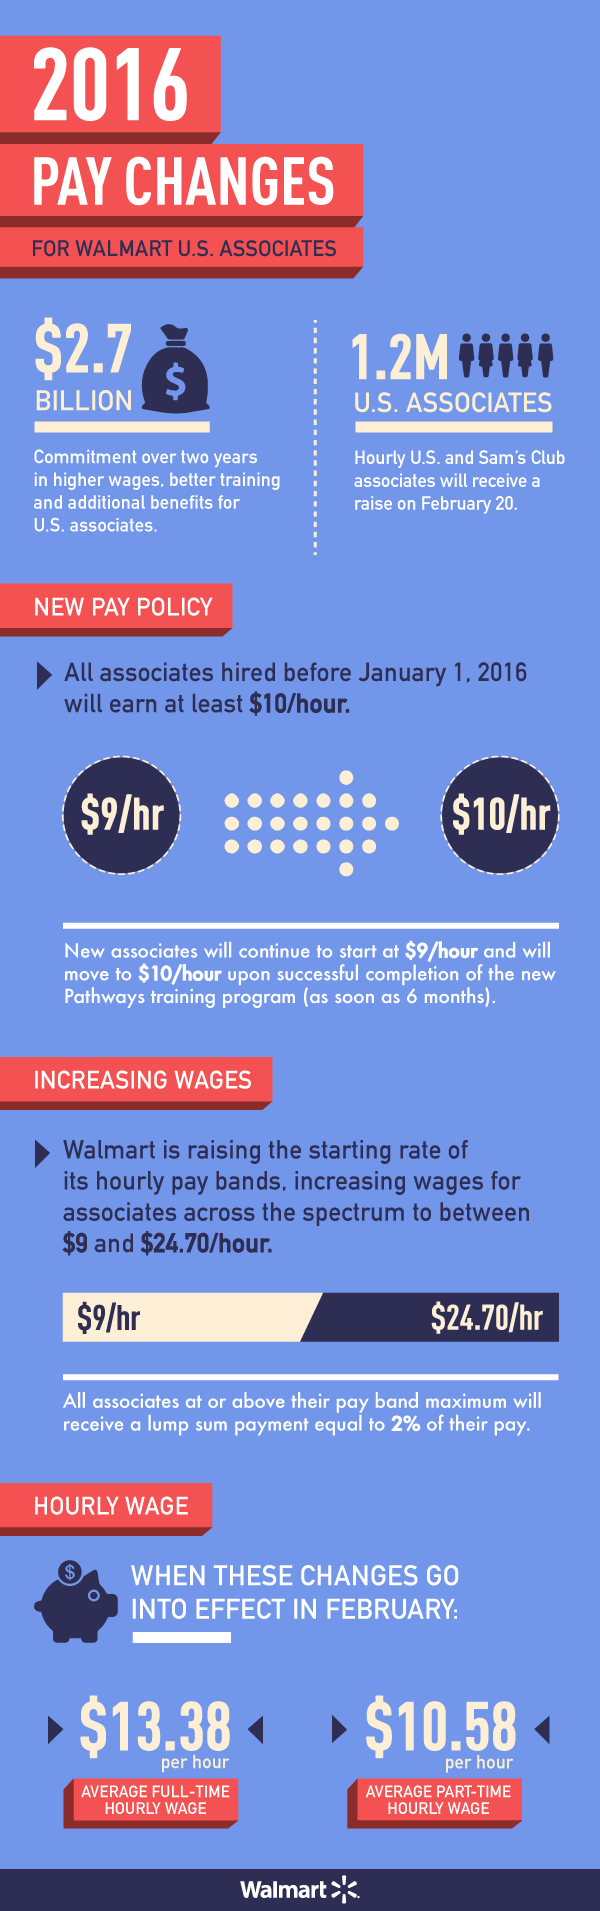 2016 Pay Changes for Walmart Associates Infographic